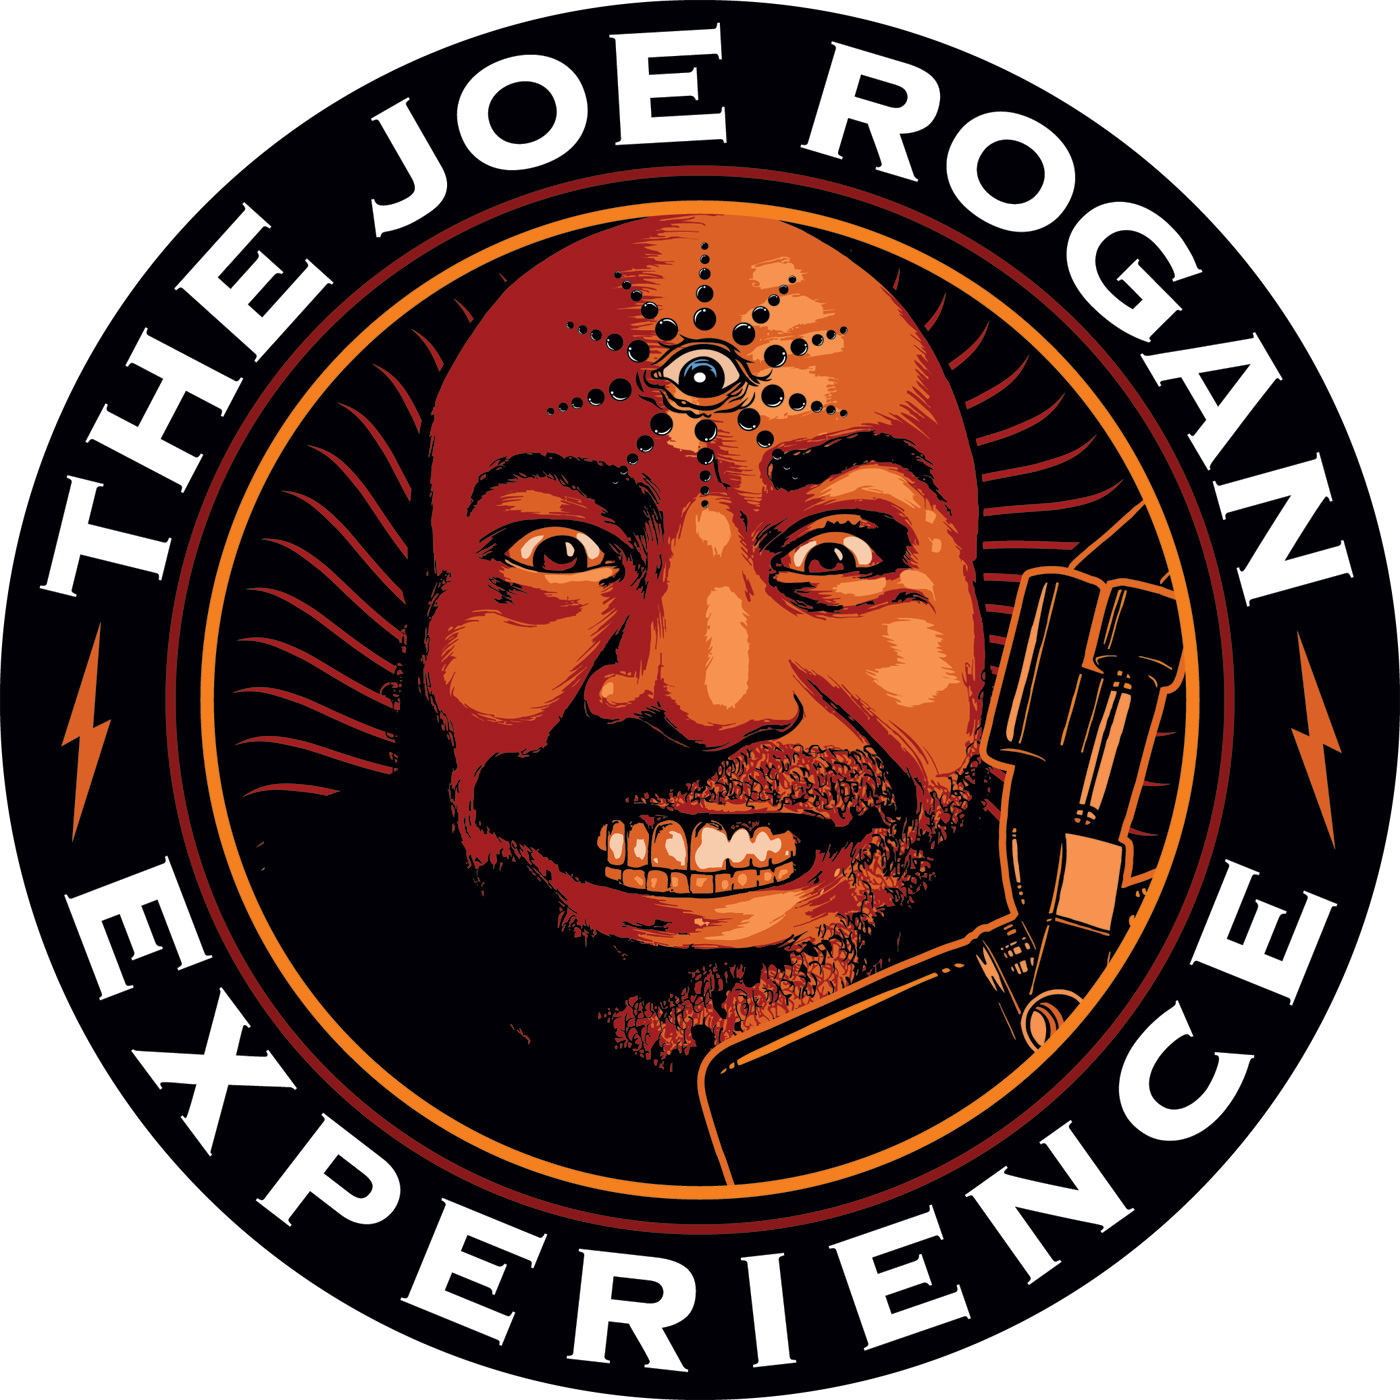 The Joe Rogan Experience PODCAST #124 - Michael Schiavello